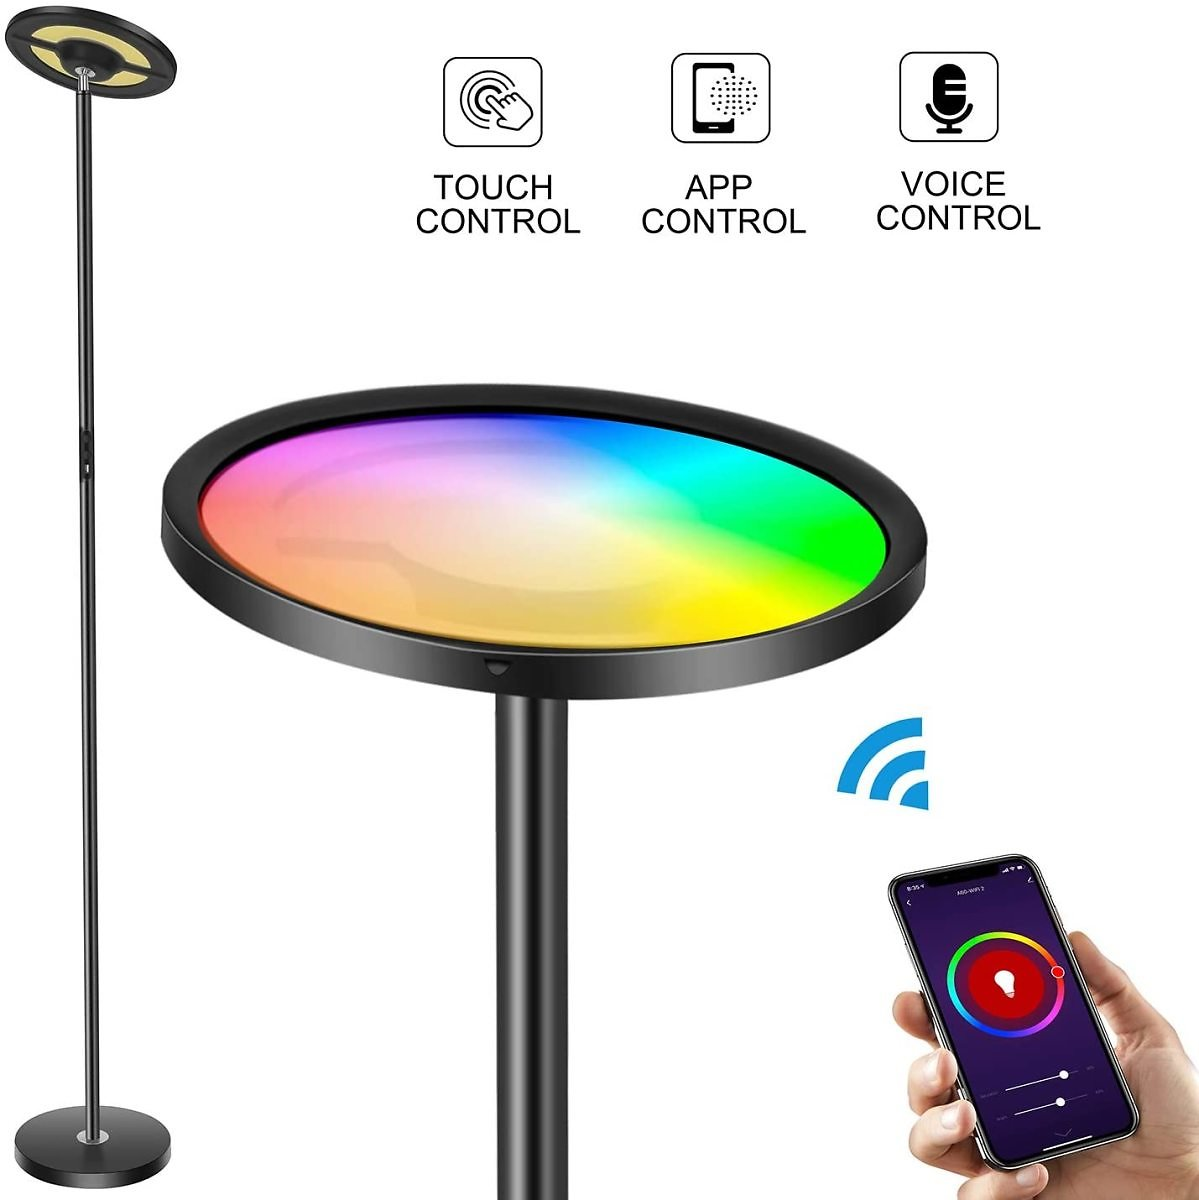 Wixann Smart Led Floor Lamp - WiFi Torchiere Floor Lamp Work with Alexa Google Home, 2000LM Super Bright Dimmable Color Changing